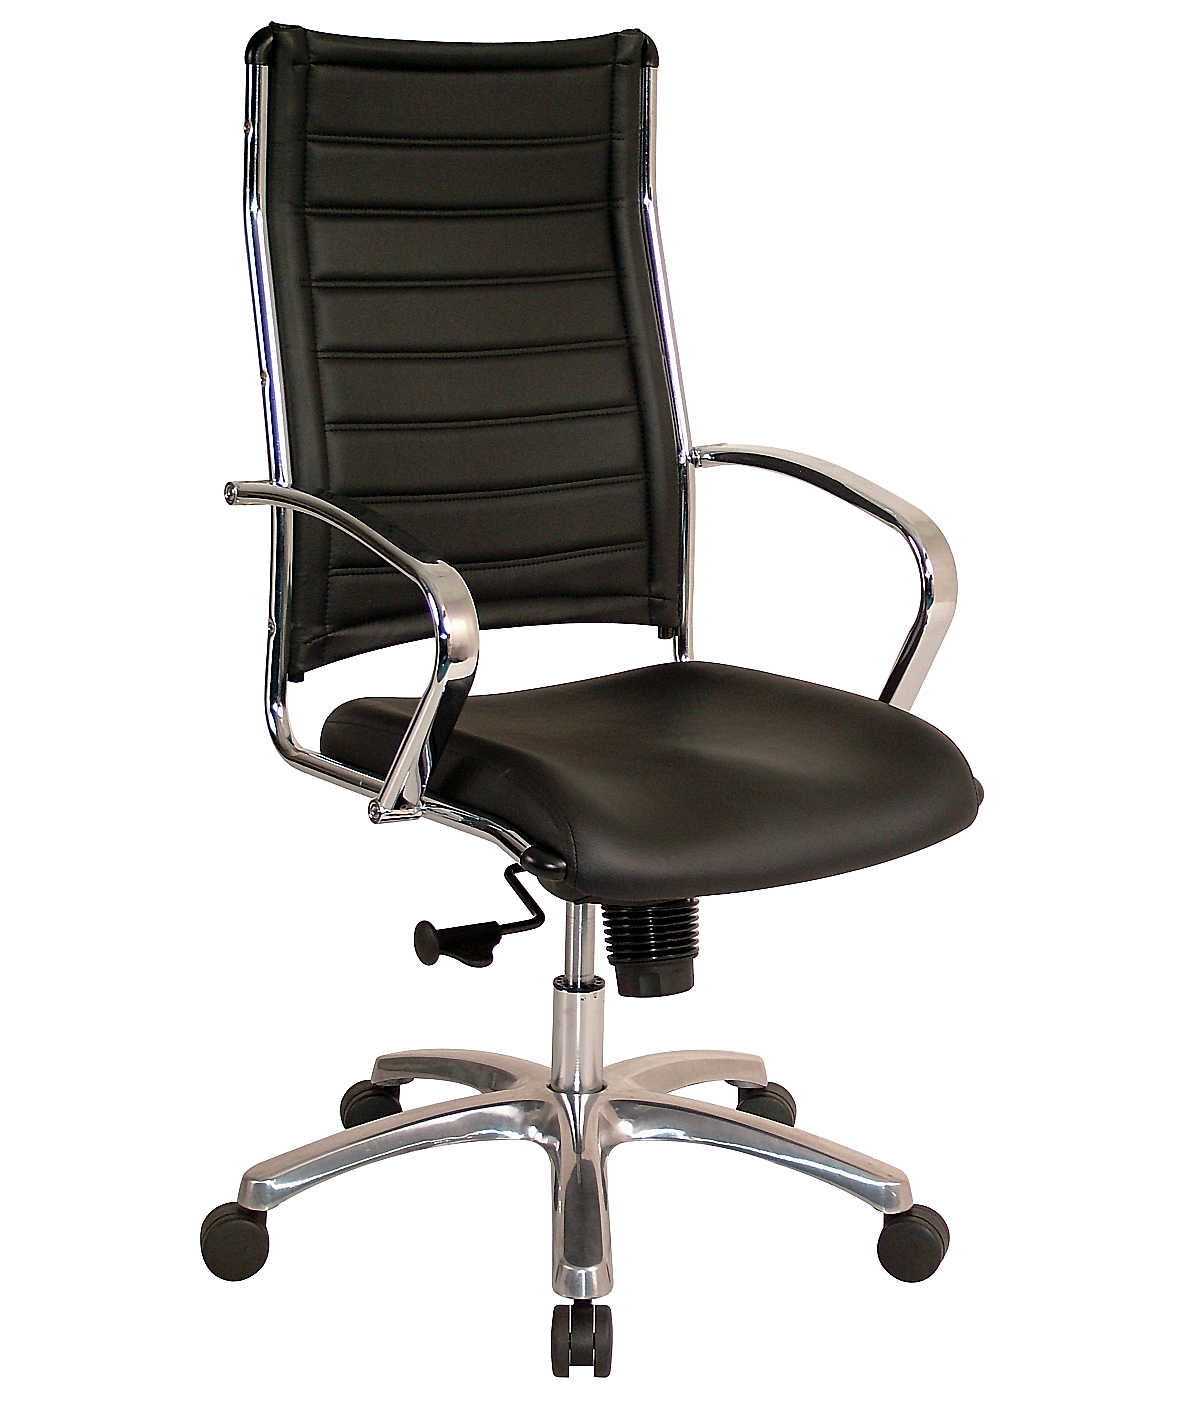 executive drafting chair desk position leather